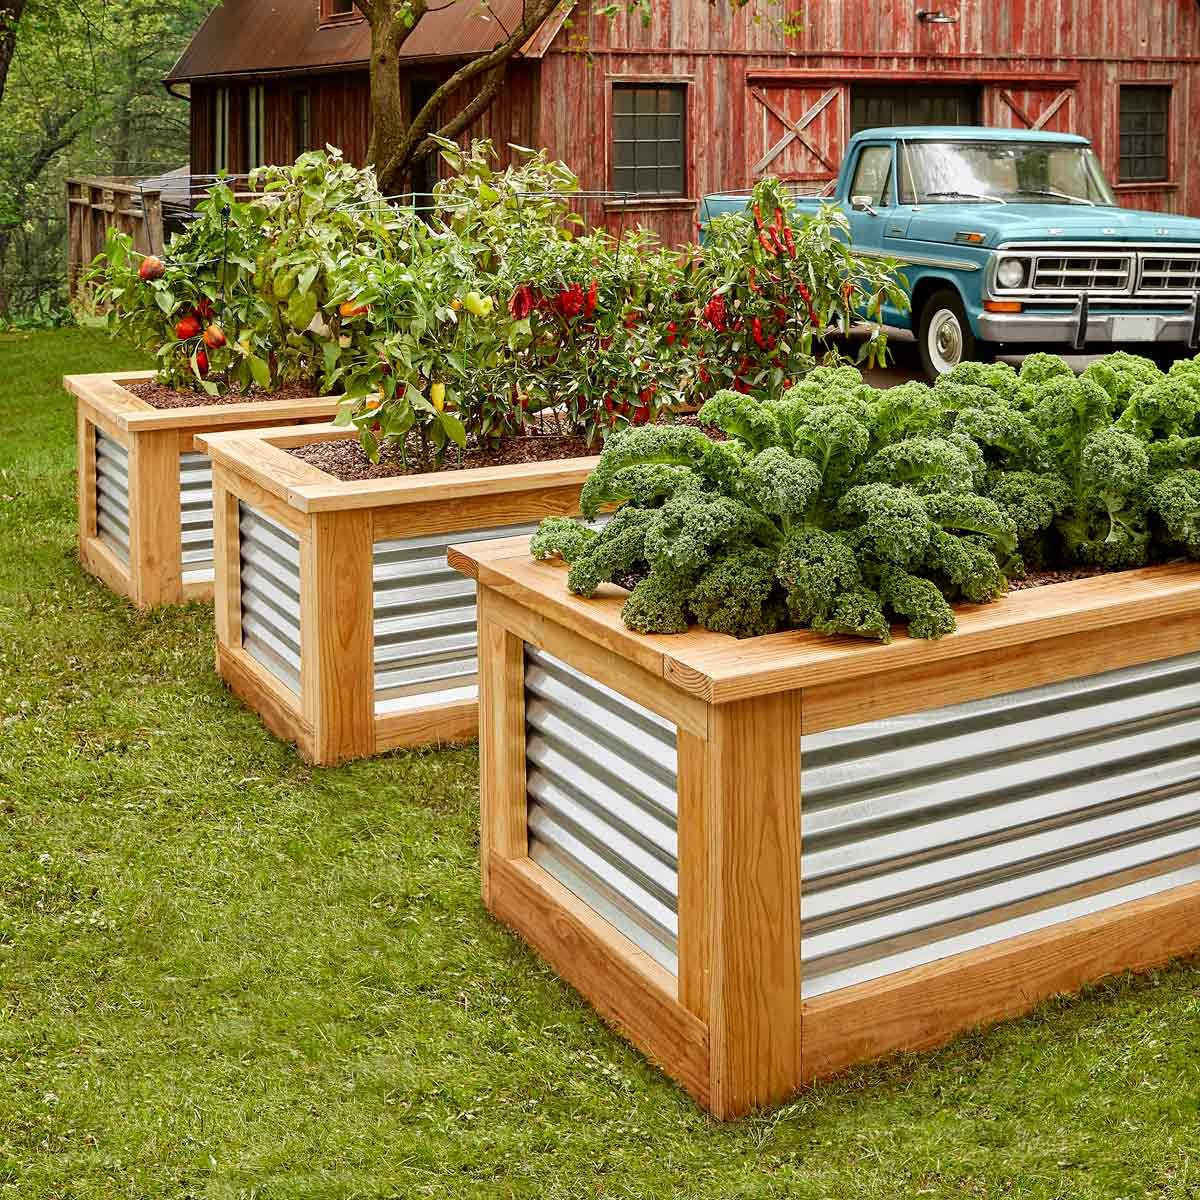 Gardening Beds: How To Build Raised Garden Beds